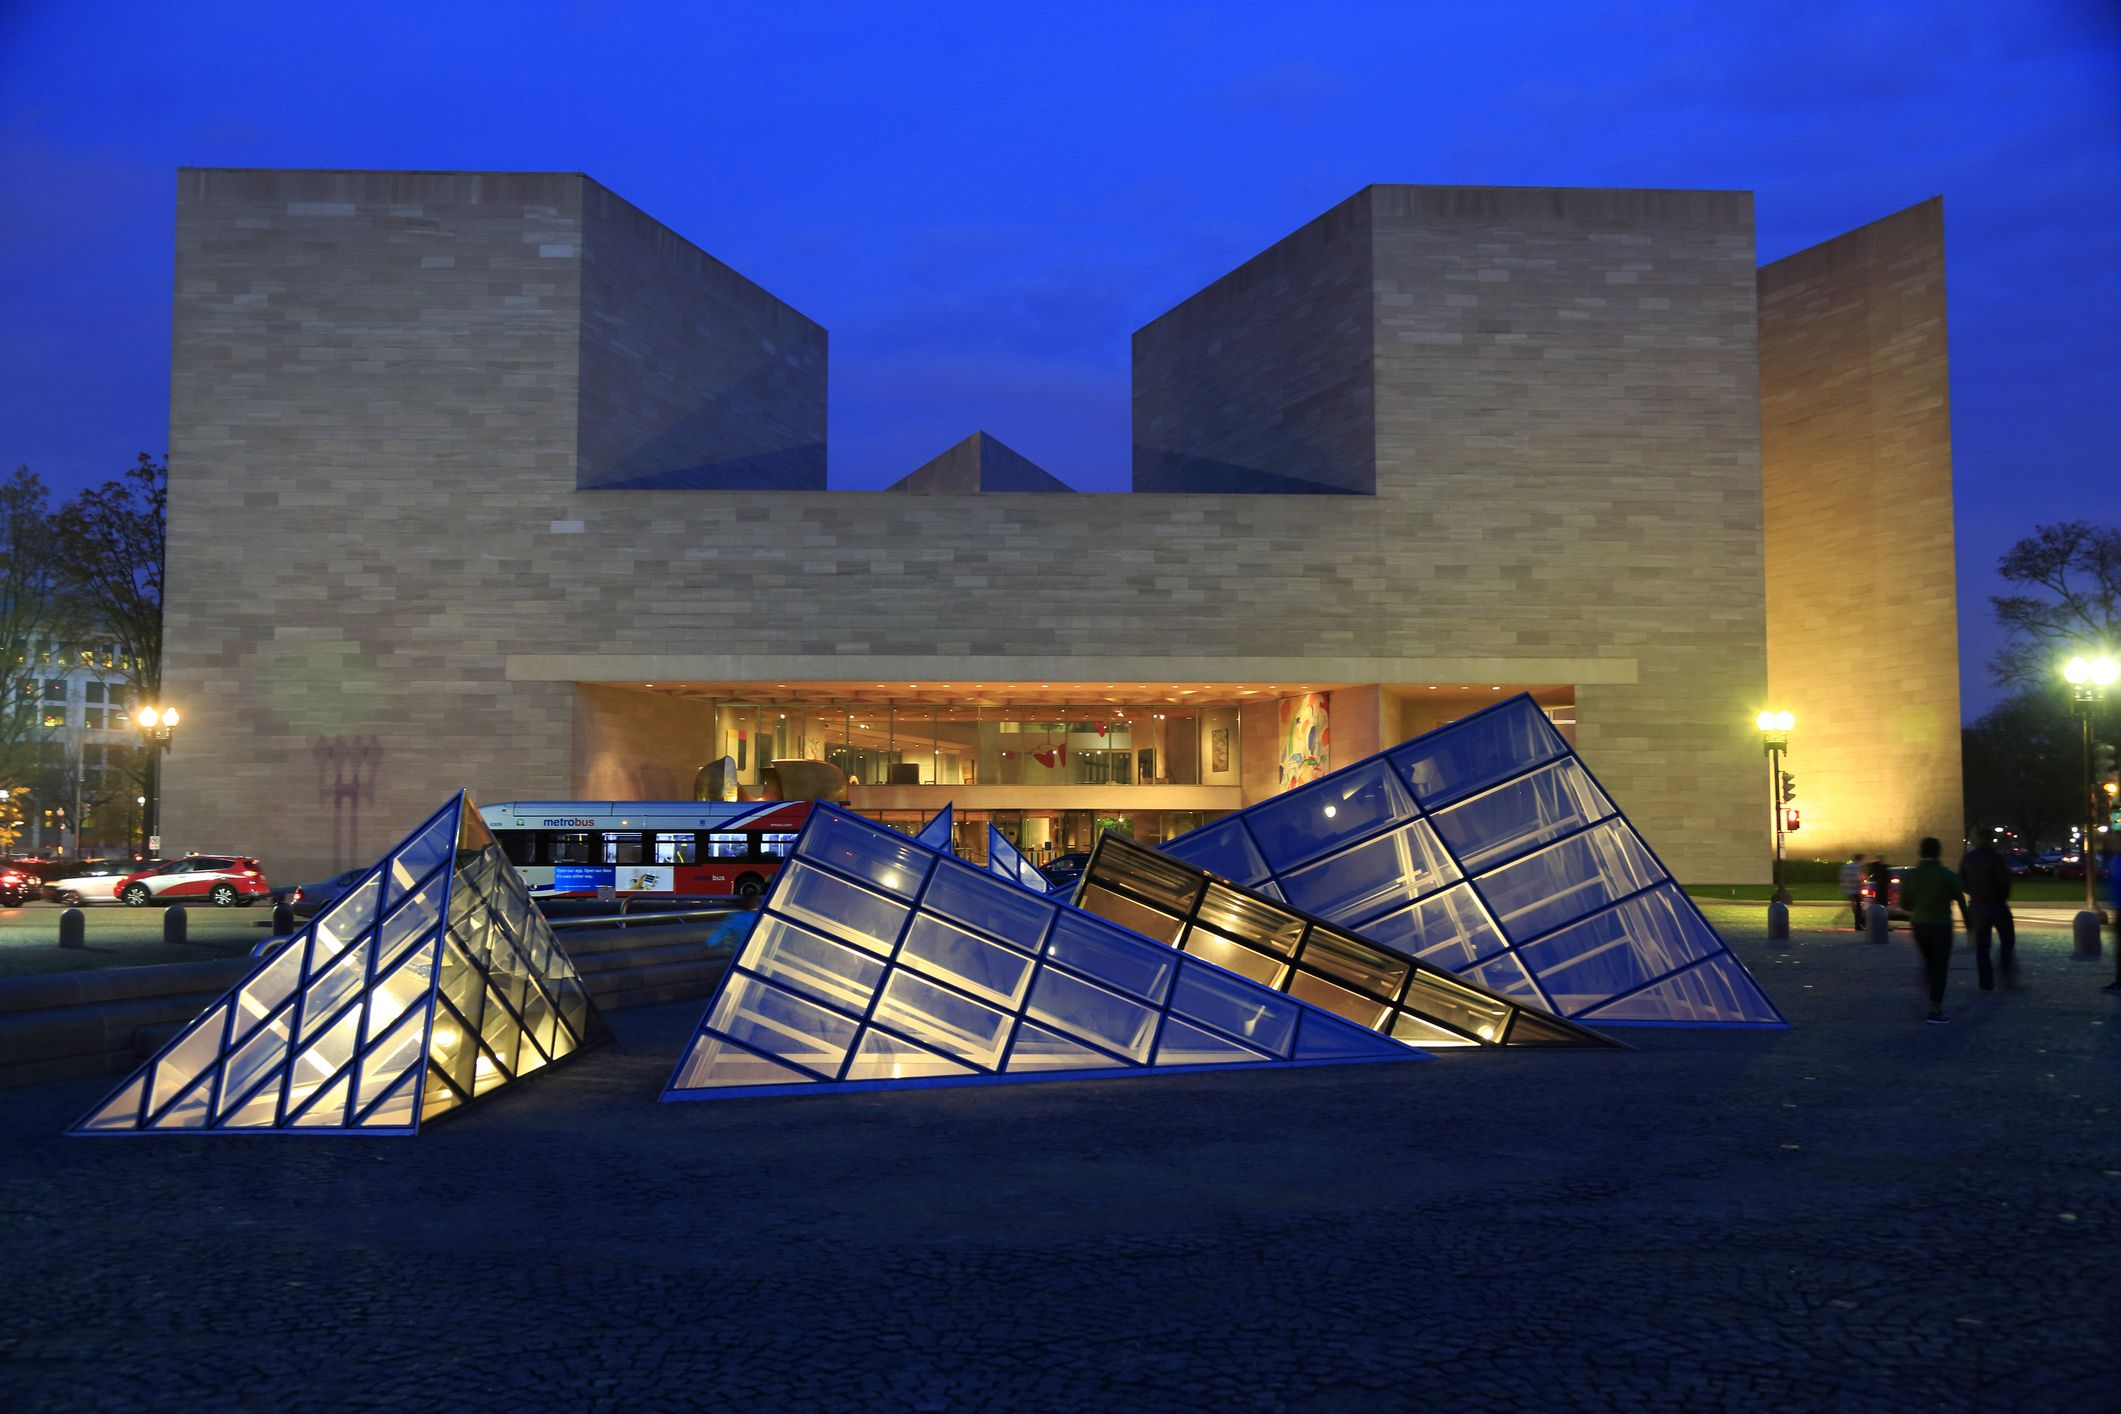 25 Best Museums in the World Famous Art Museums & Galleries to